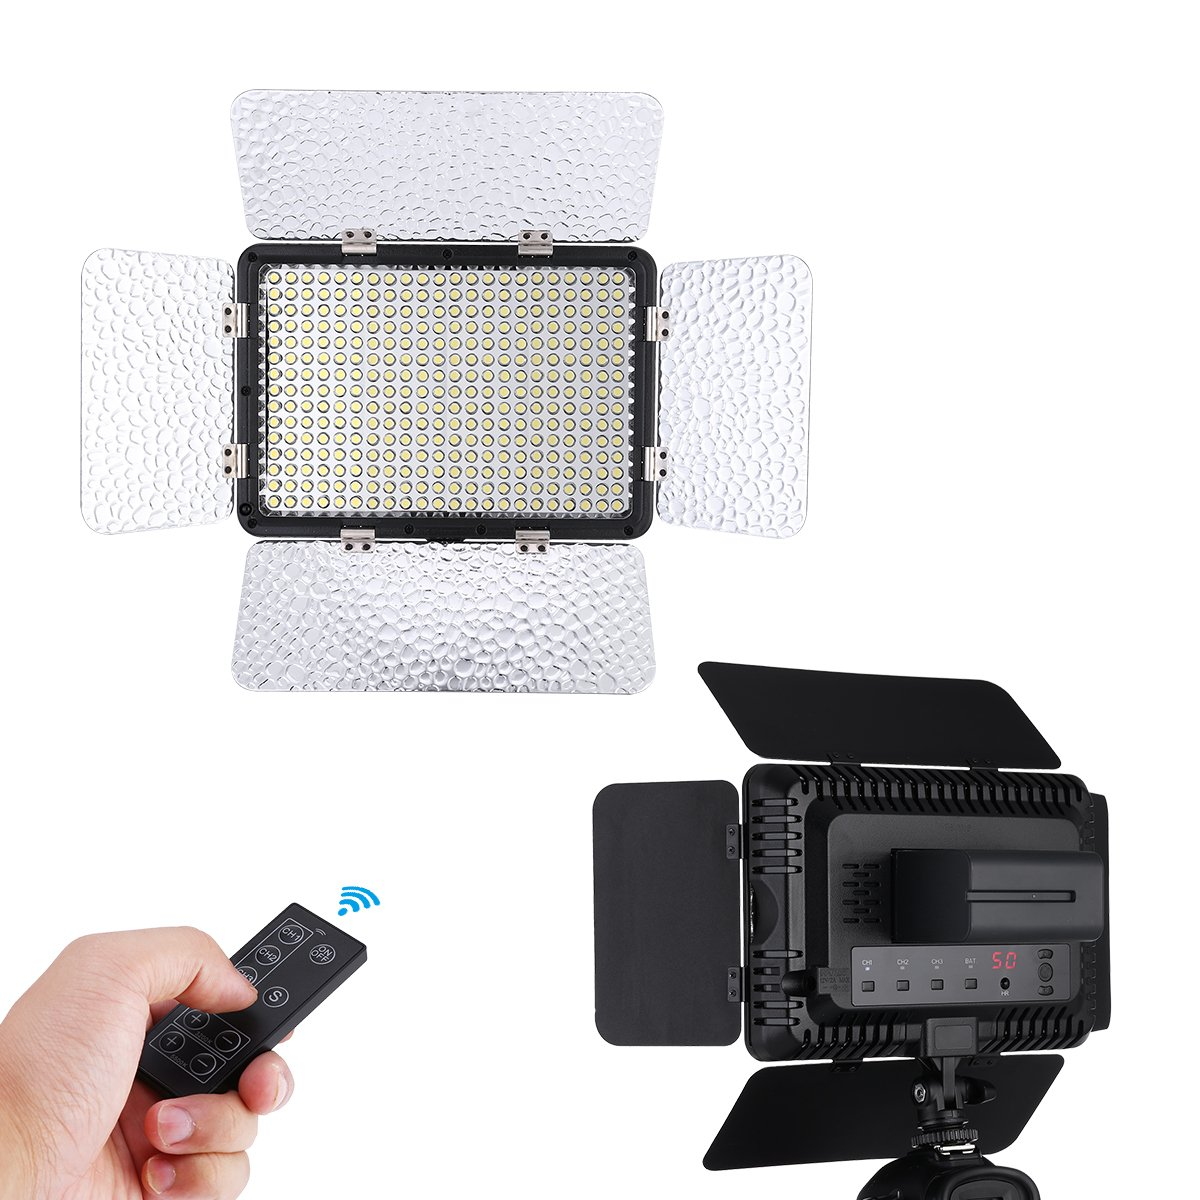 Powerextra 330 Beads 25W LED Video Light Panel Dimmable Camera/Camcorder Light, 2.4G Remote Control, Diffuser, 2 Color Filters(Orange and Blue) for All DSLR Cmeras